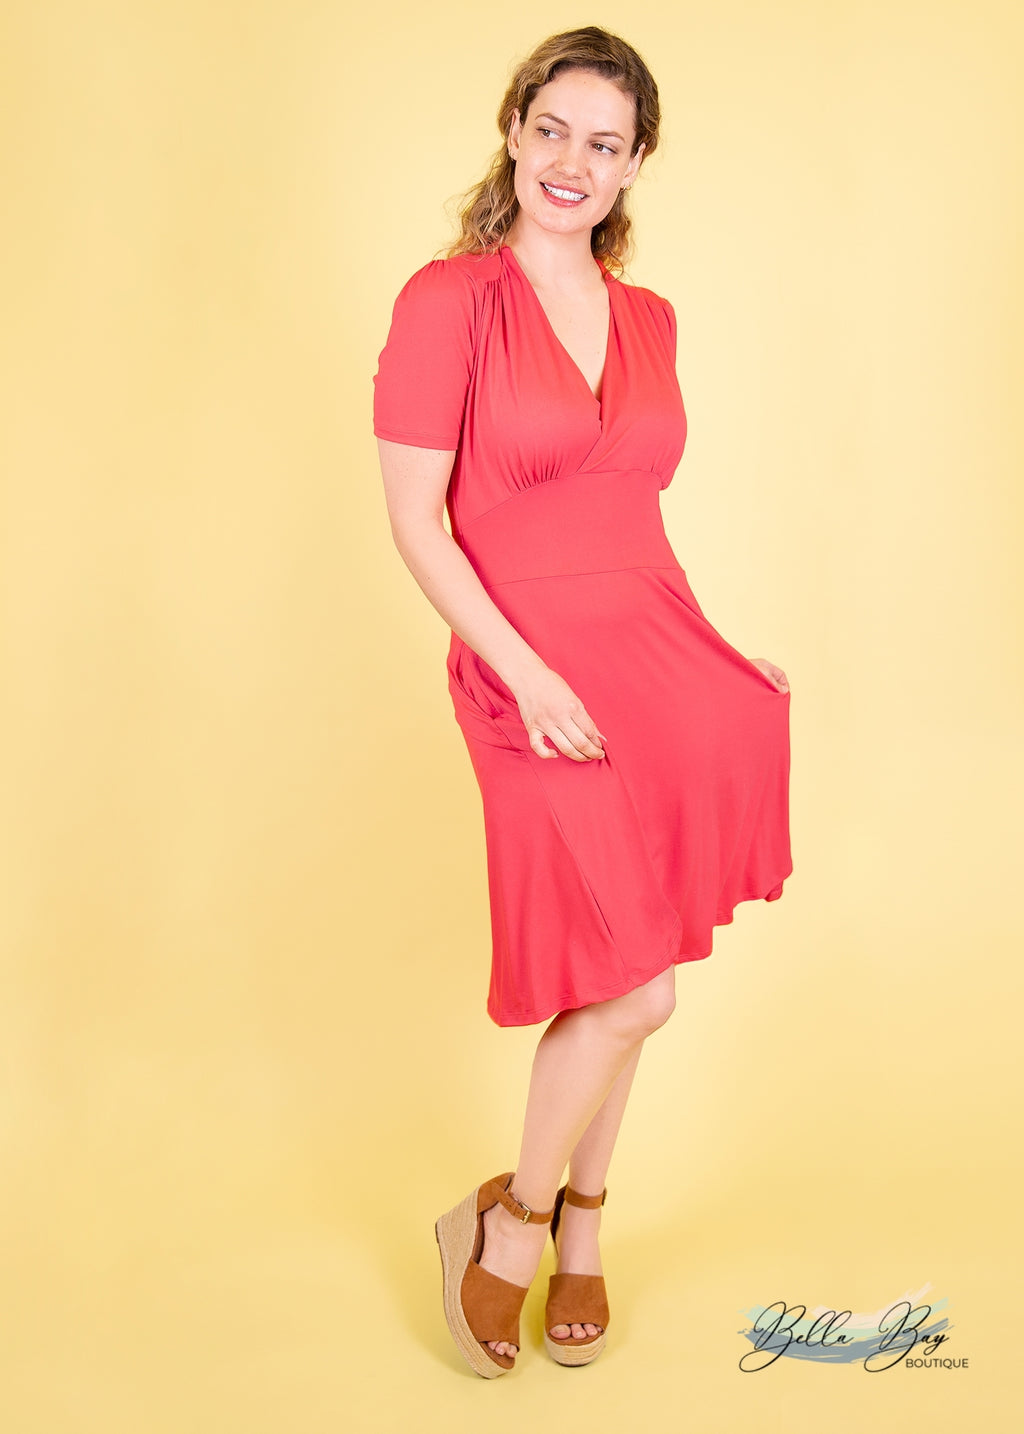 Paisley Raye Dahlia Dress- Coral (S) - Paisley Raye with Bella Bay Boutique, shop now at  https://shopbellabay.com/ or locally in Newport Oregon